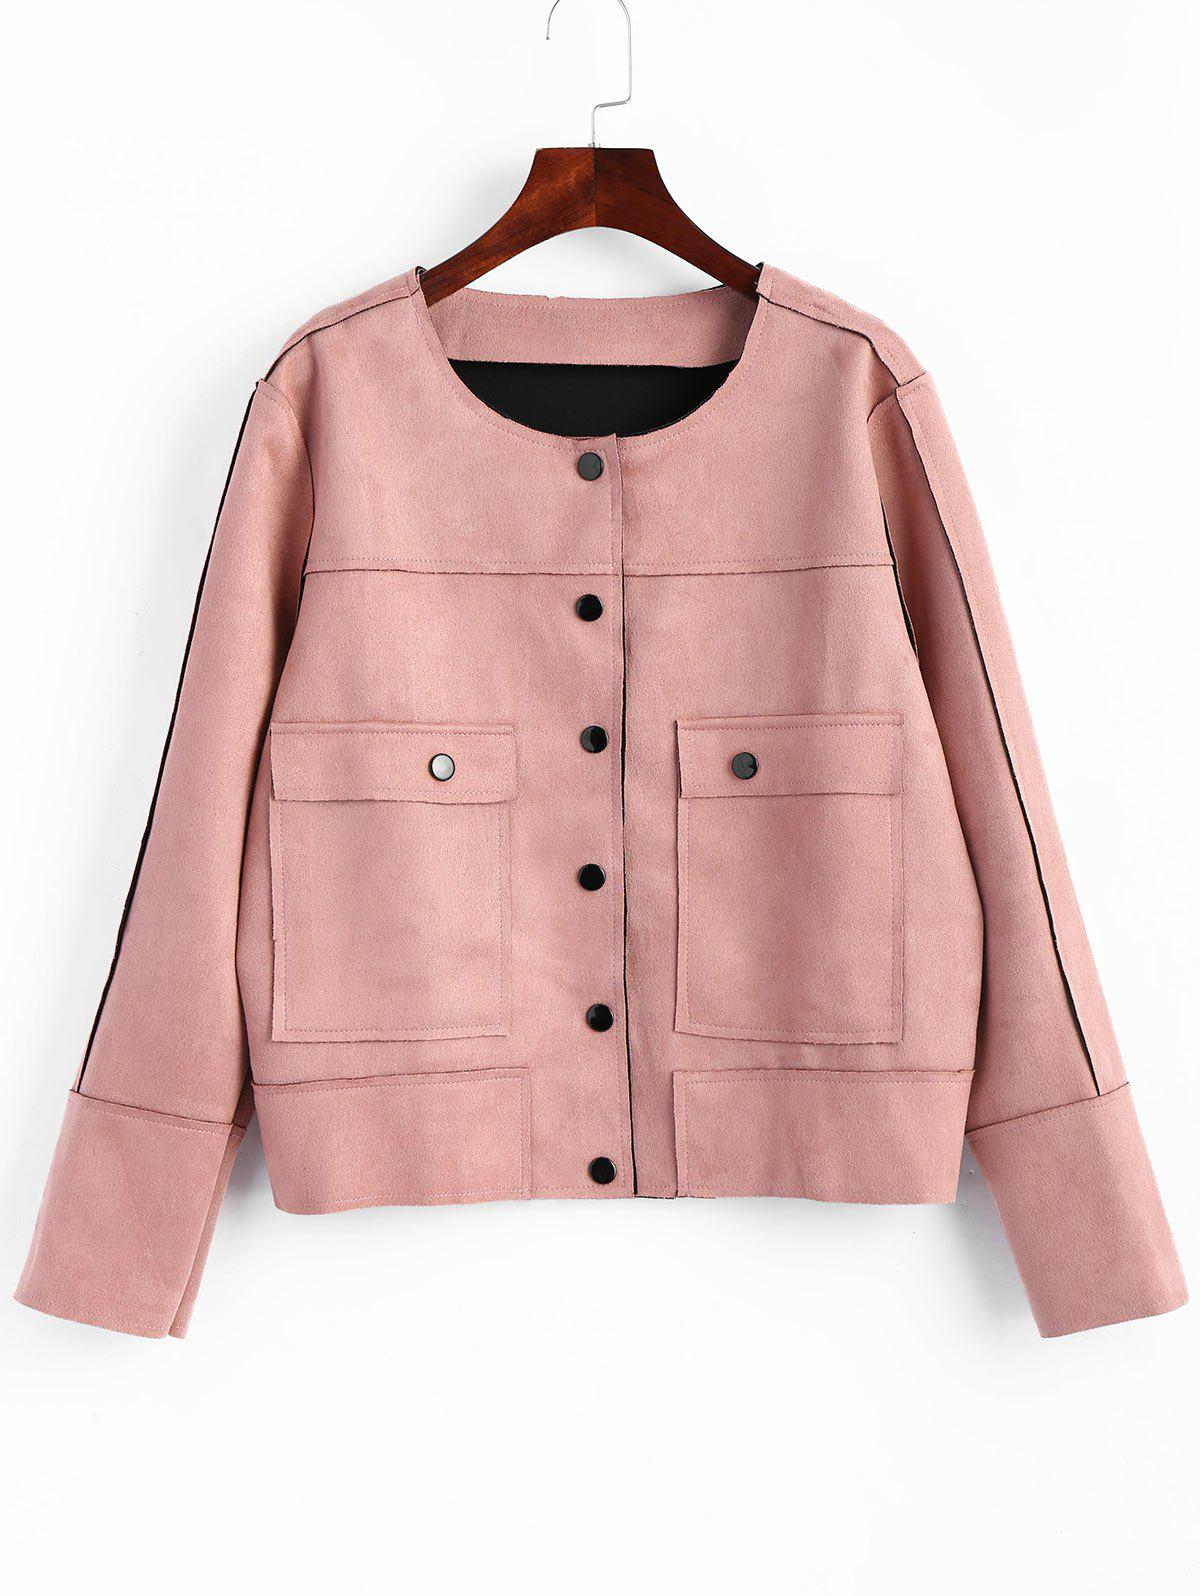 Button Up Plus Size Faux Suede JacketWOMEN<br><br>Size: 5XL; Color: PINK; Clothes Type: Jackets; Material: Polyester,Spandex; Type: Slim; Shirt Length: Short; Sleeve Length: Full; Collar: Round Neck; Pattern Type: Solid; Style: Fashion; Season: Fall,Winter; Weight: 0.5700kg; Package Contents: 1 x Jacket;